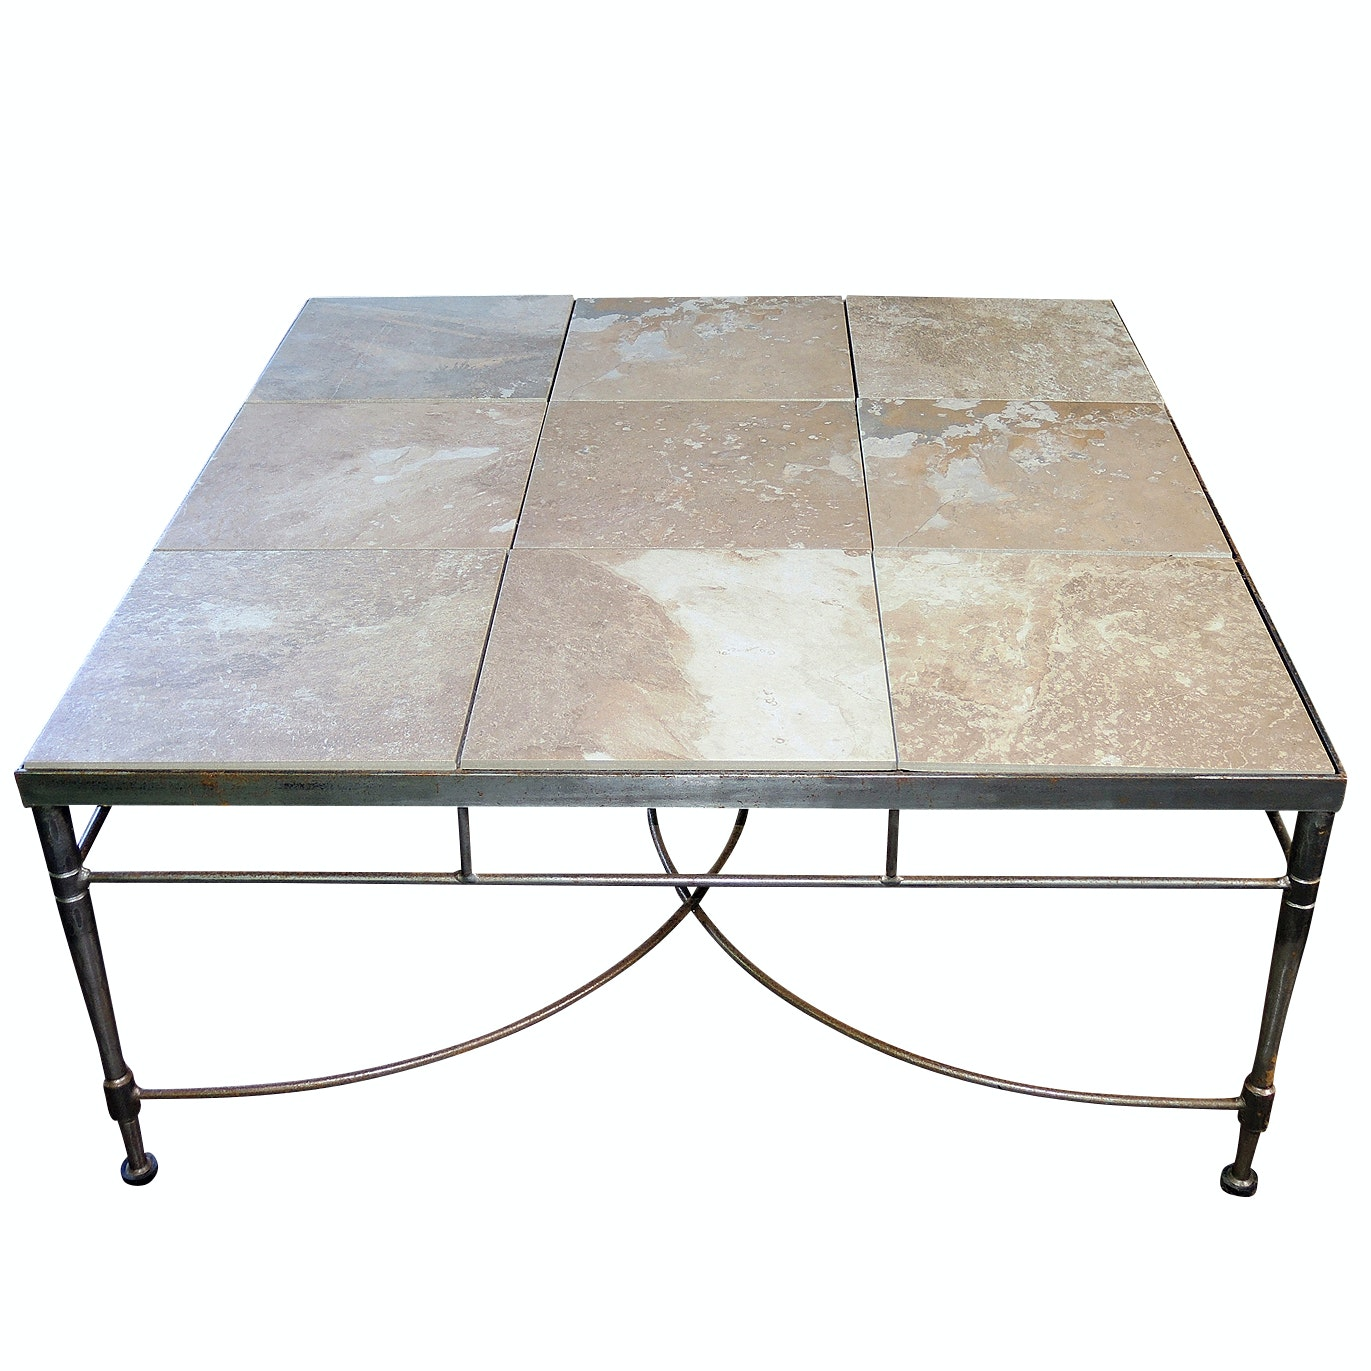 Arhaus Contemporary Stone-Finish Tile Top, Metal Base Coffee Table